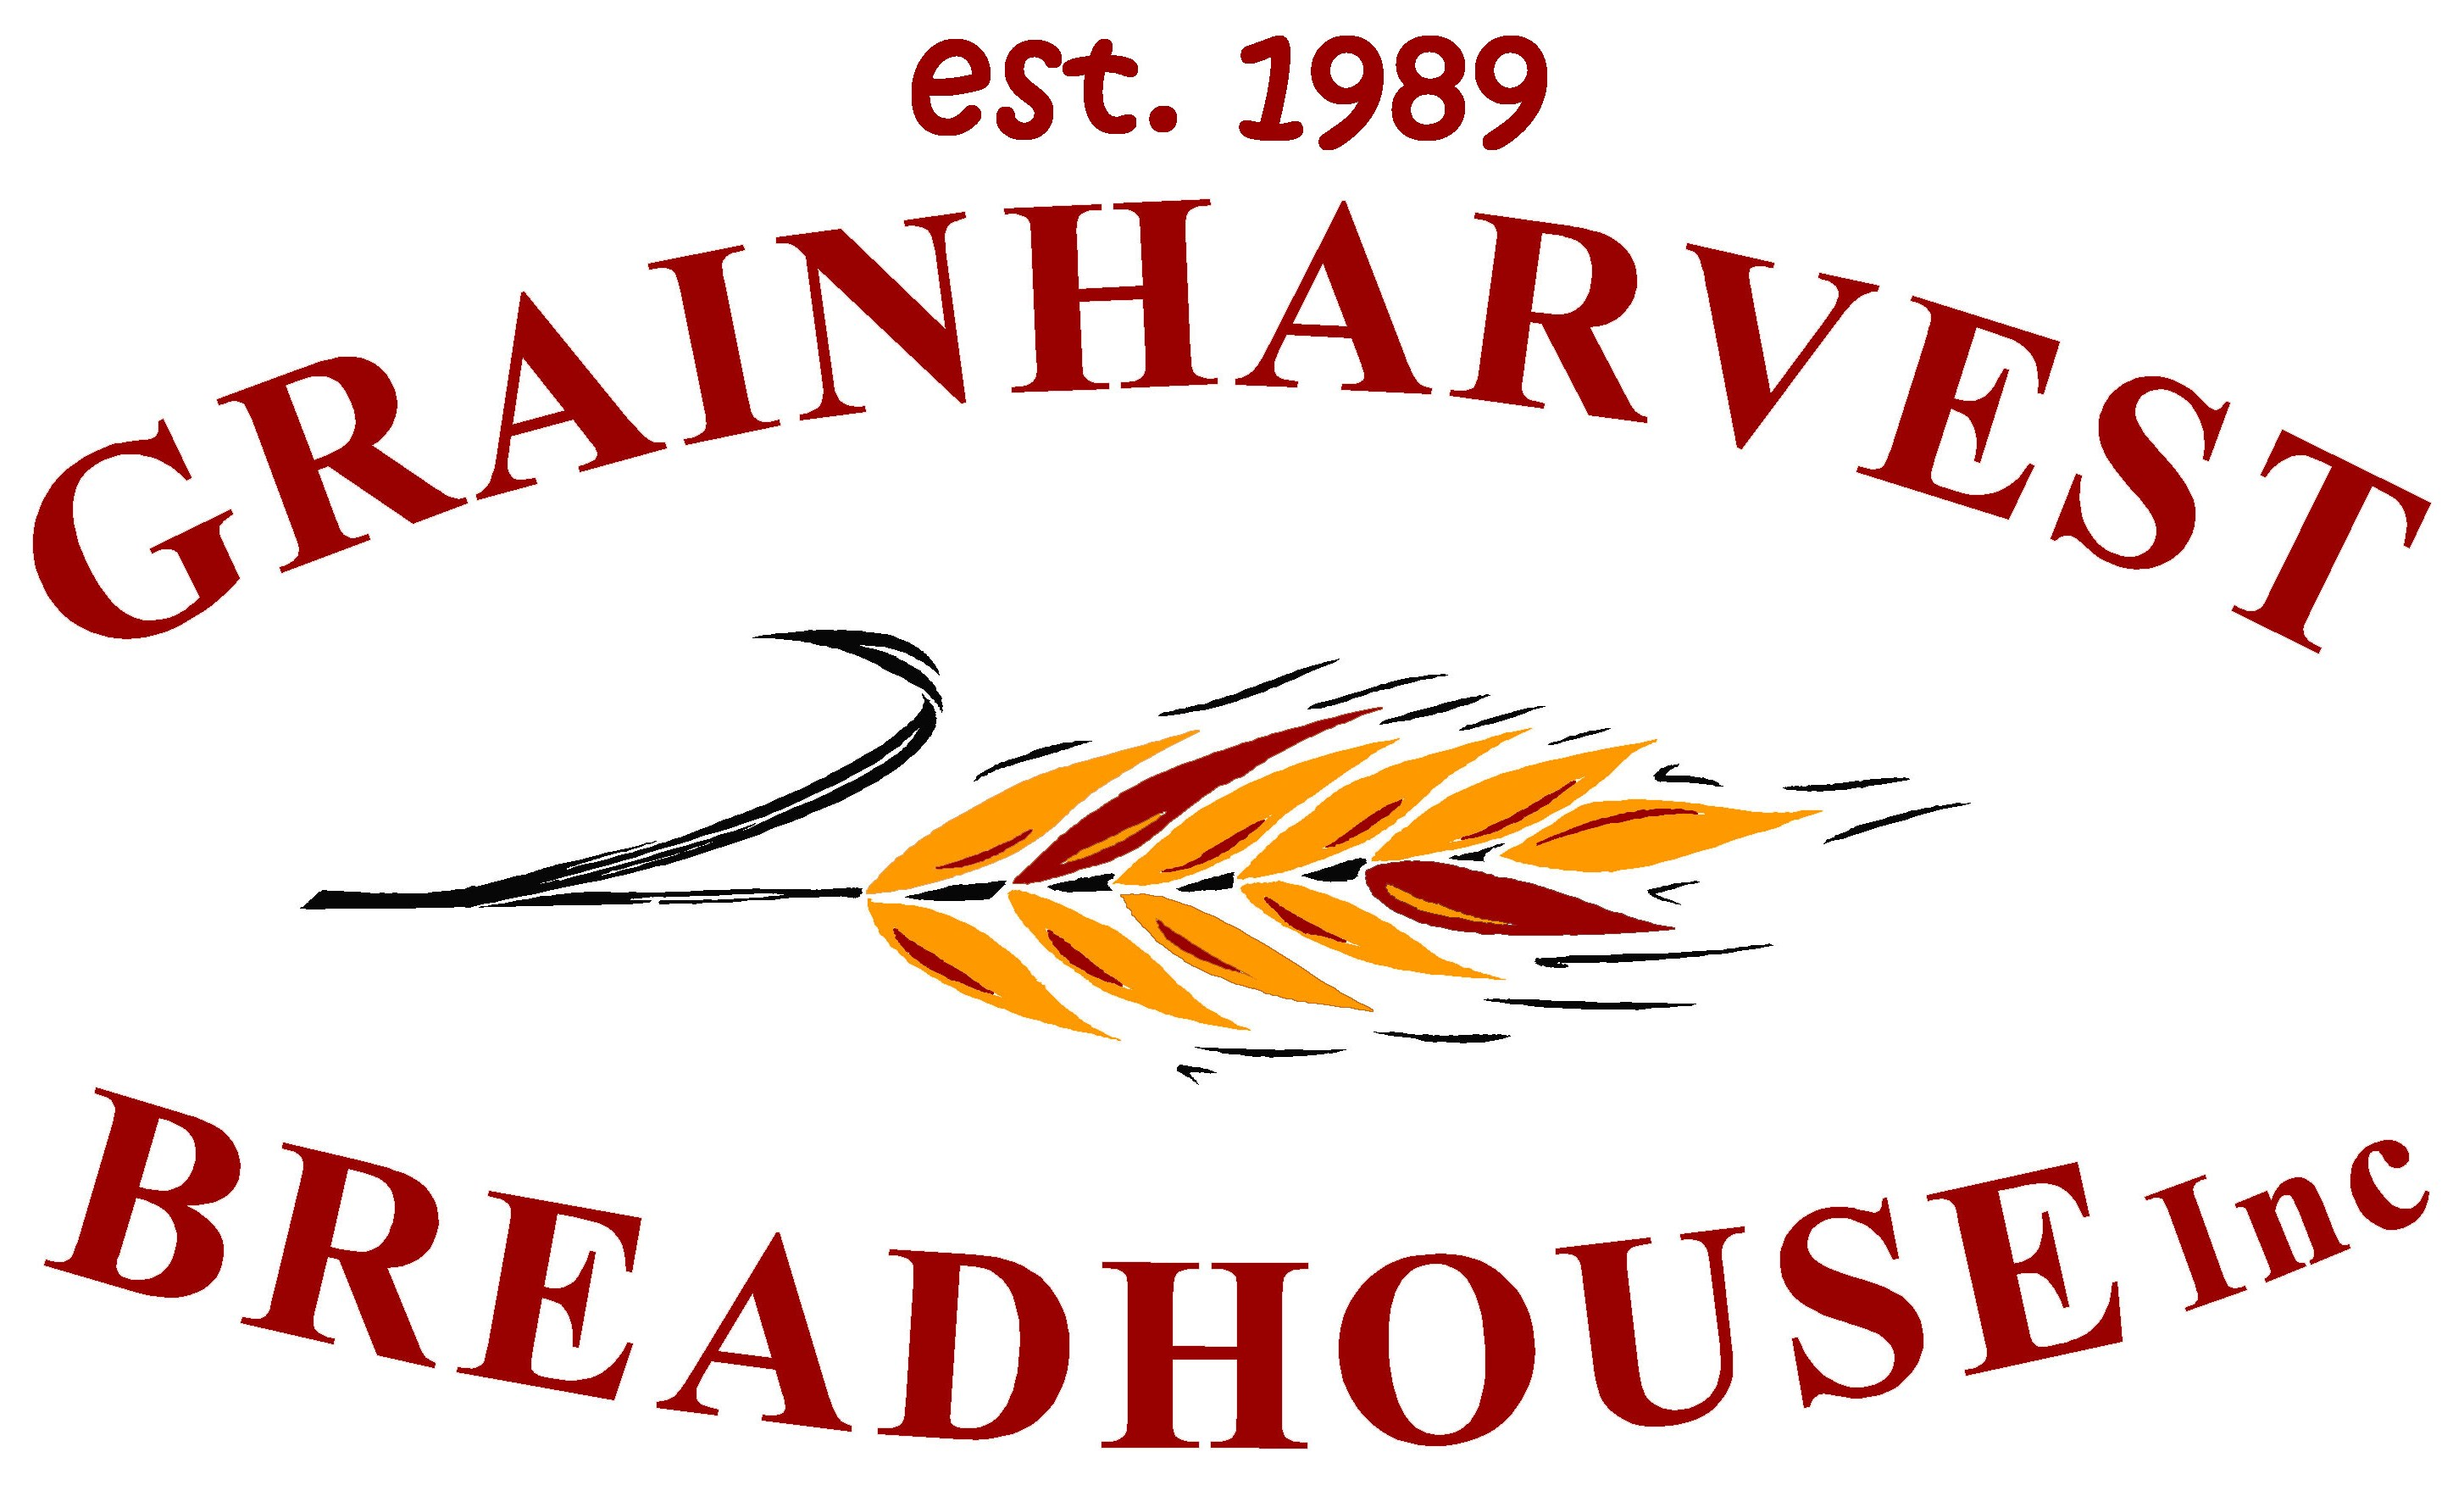 Grainharvest Breadhouse Inc